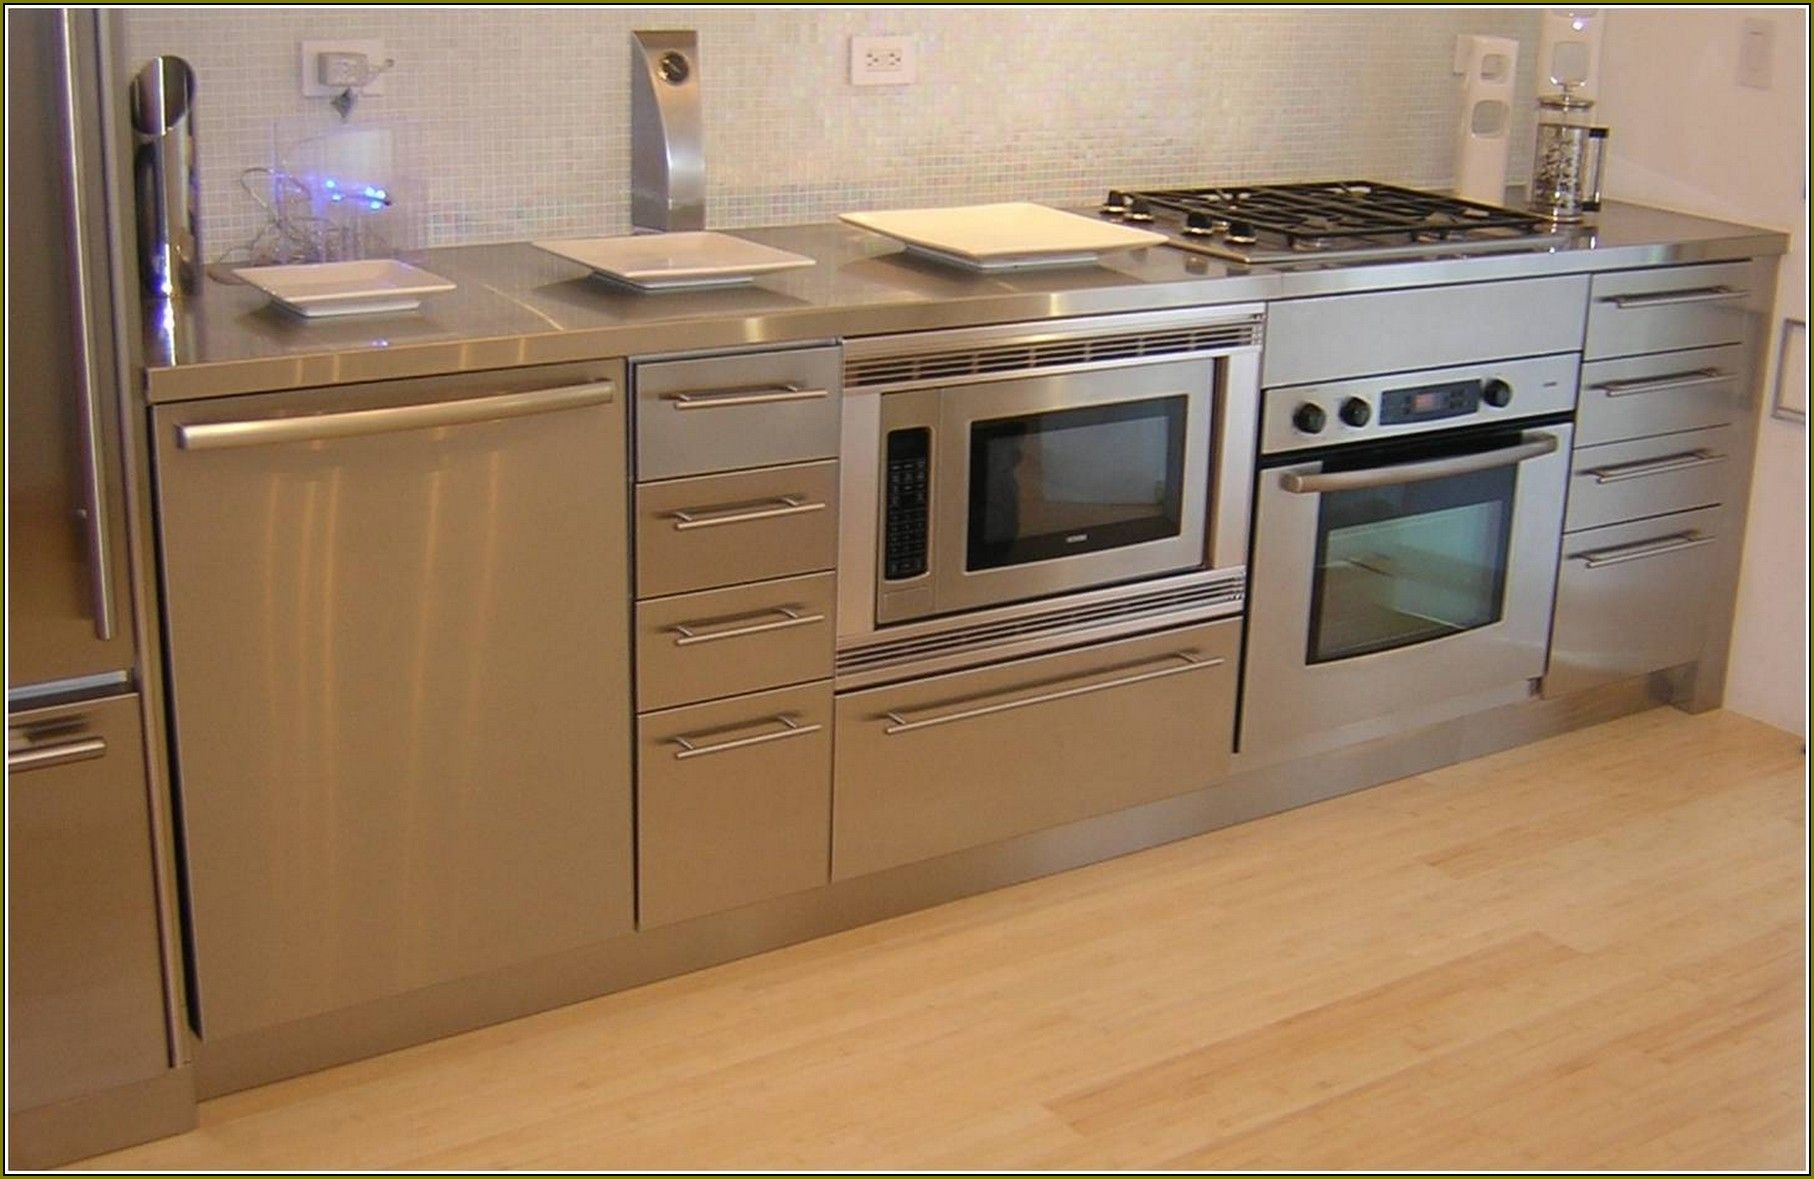 Image Result For Small Built In Microwave With Turntable Trim Kit Under Counter Oven